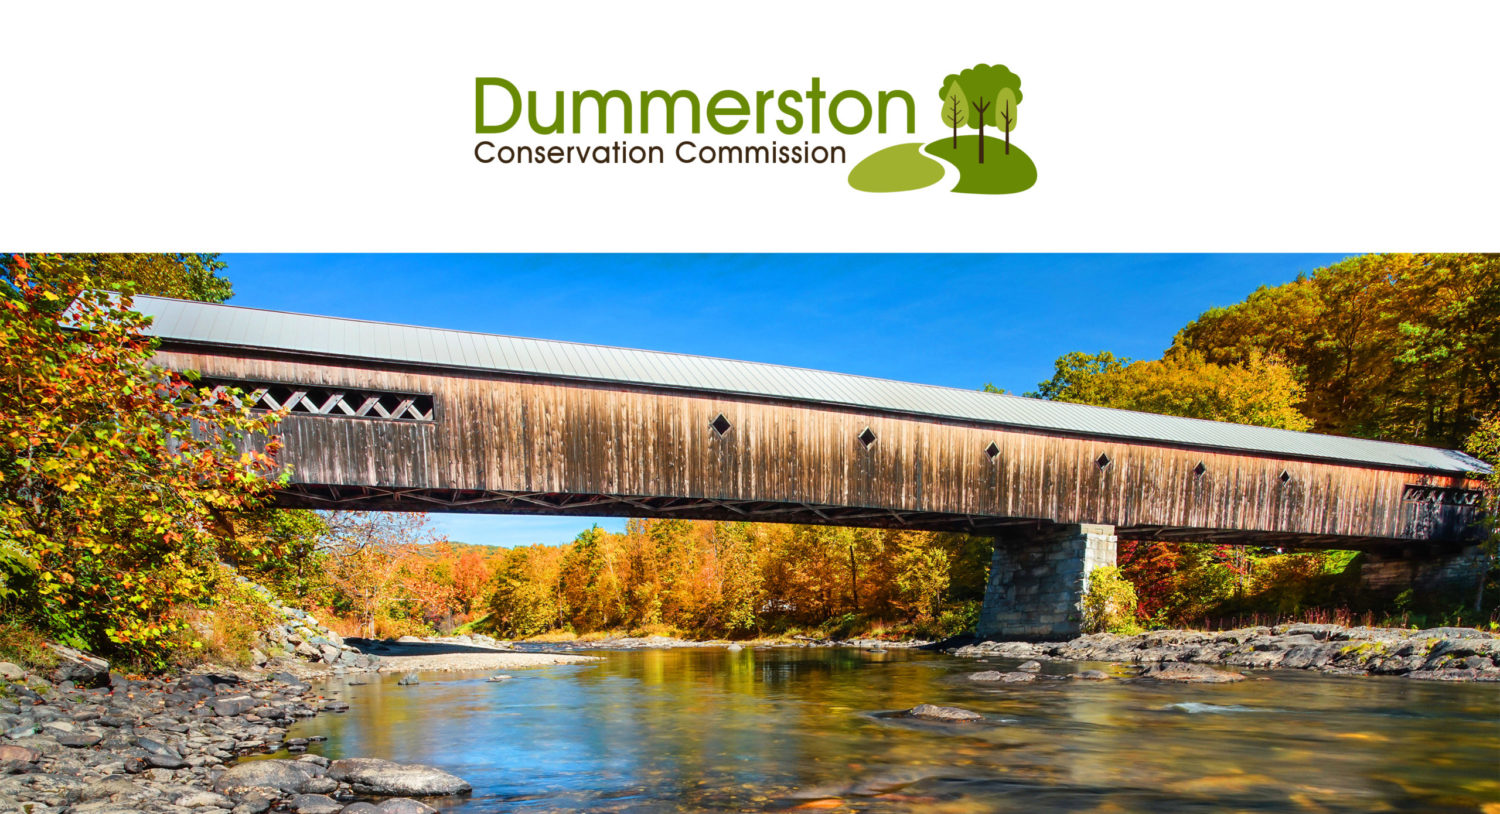 Dummerston Conservation Commission